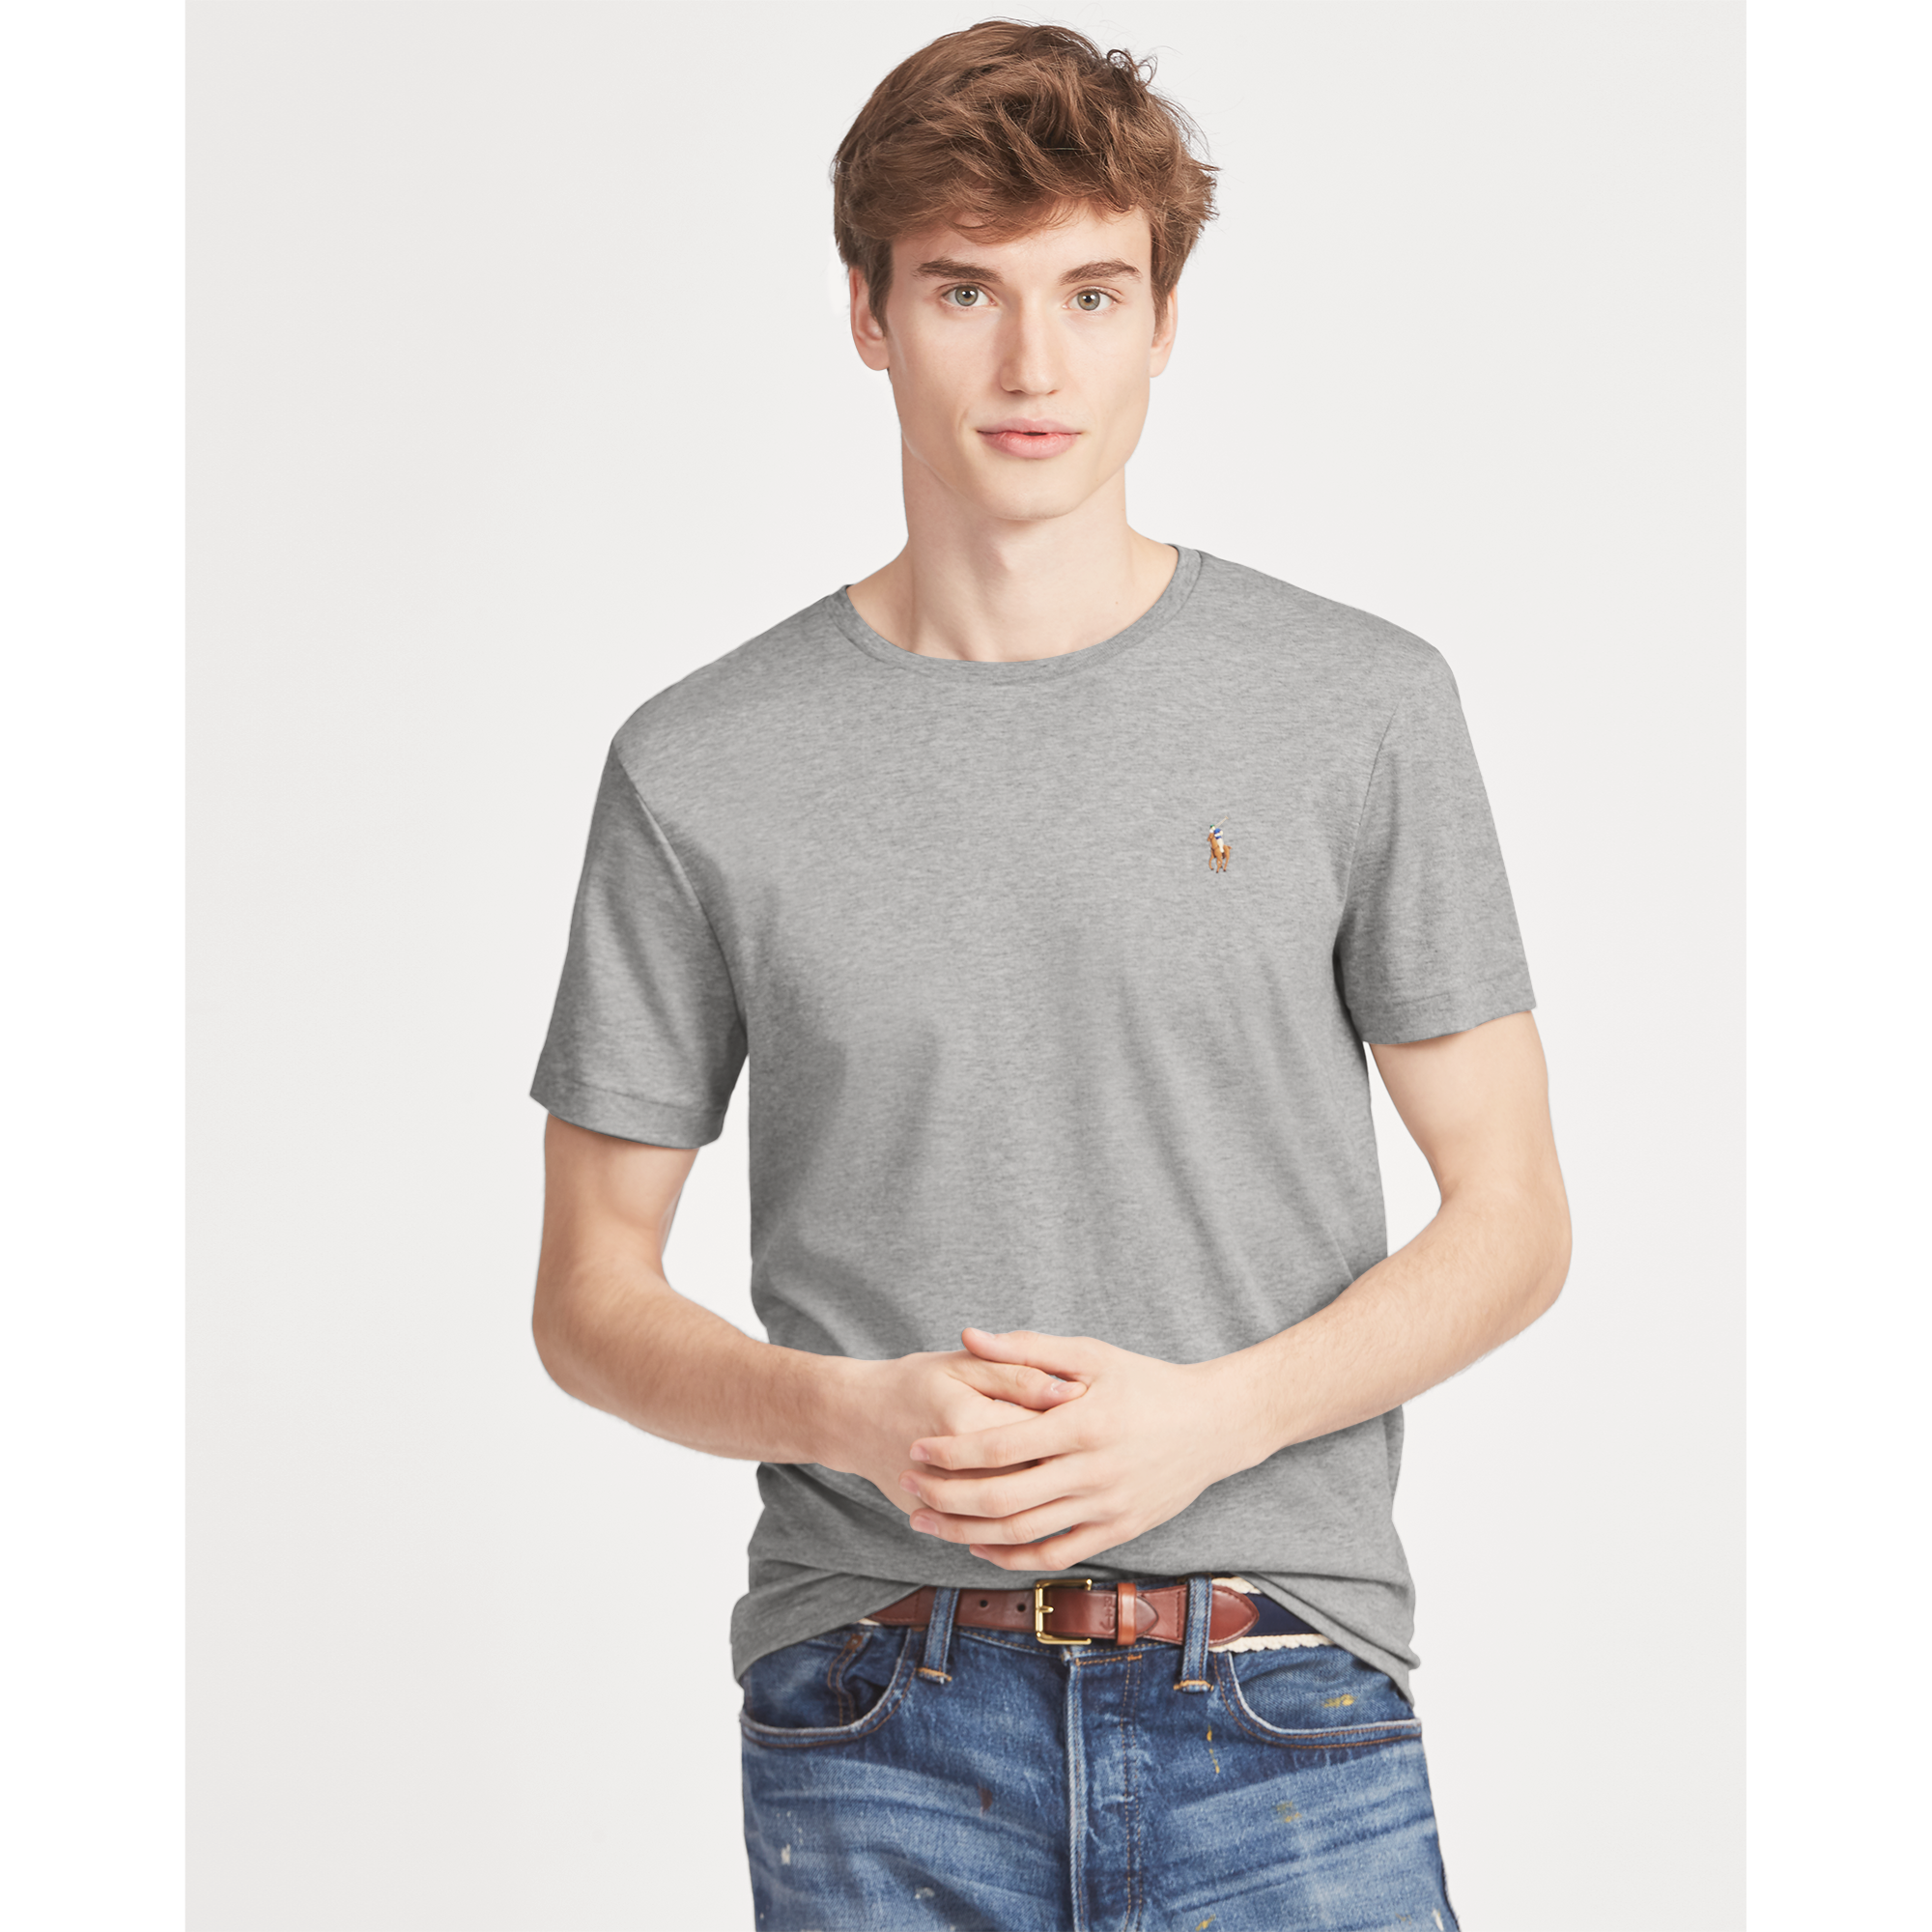 20% off mens t-shirts - The most versatile and easily worn piece of clothing that any man can own recommended by the EXPERT and discounted with up to 20% off.